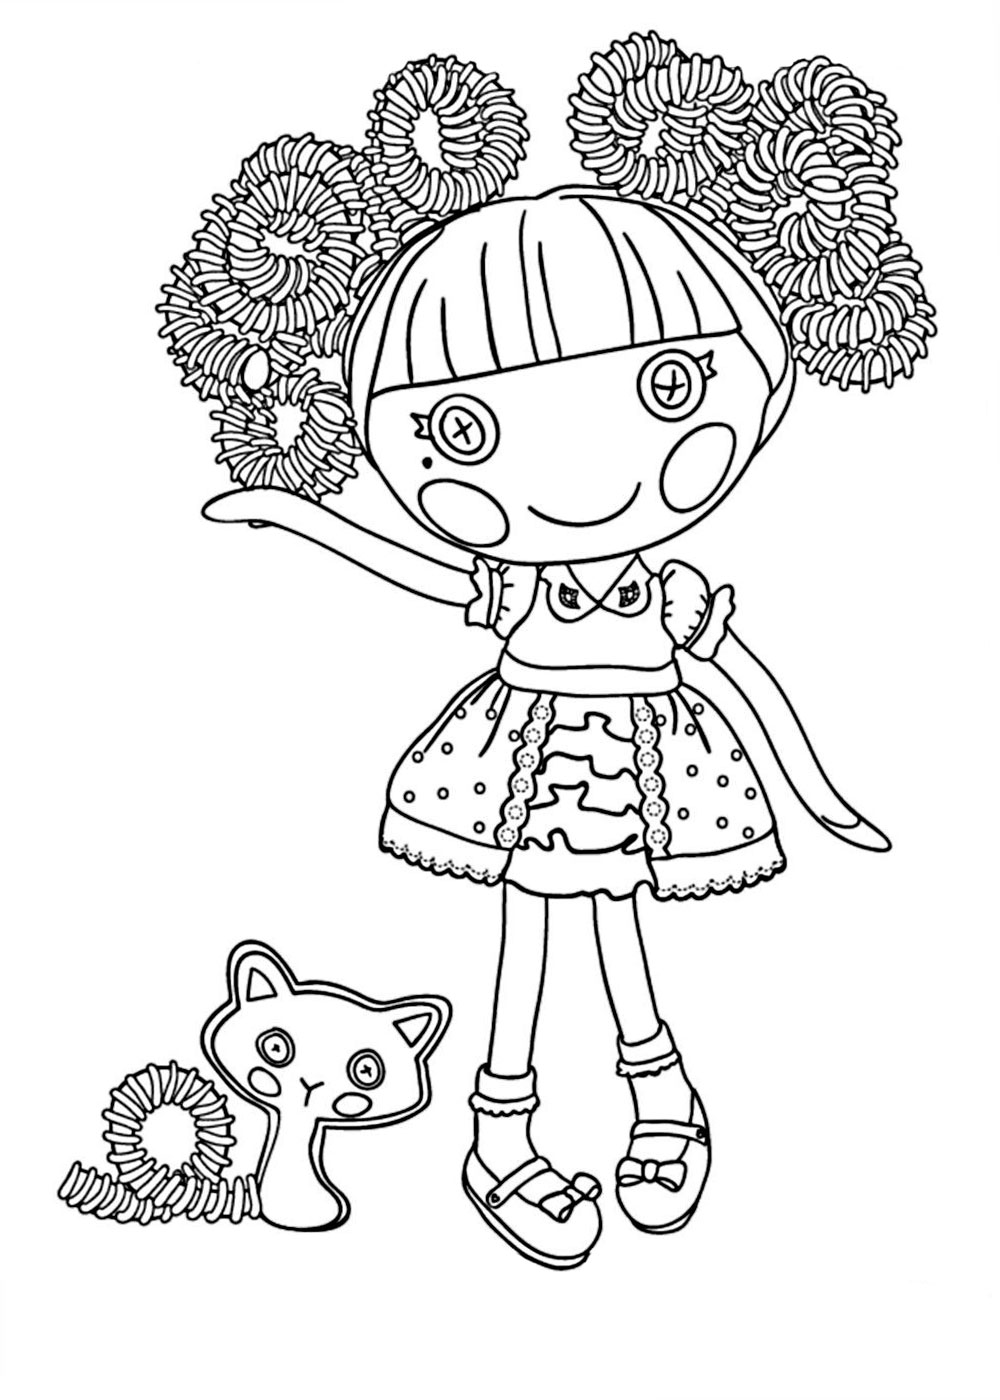 lalaloopsy girl coloring pages coloring pages - Lalaloopsy Coloring Pages